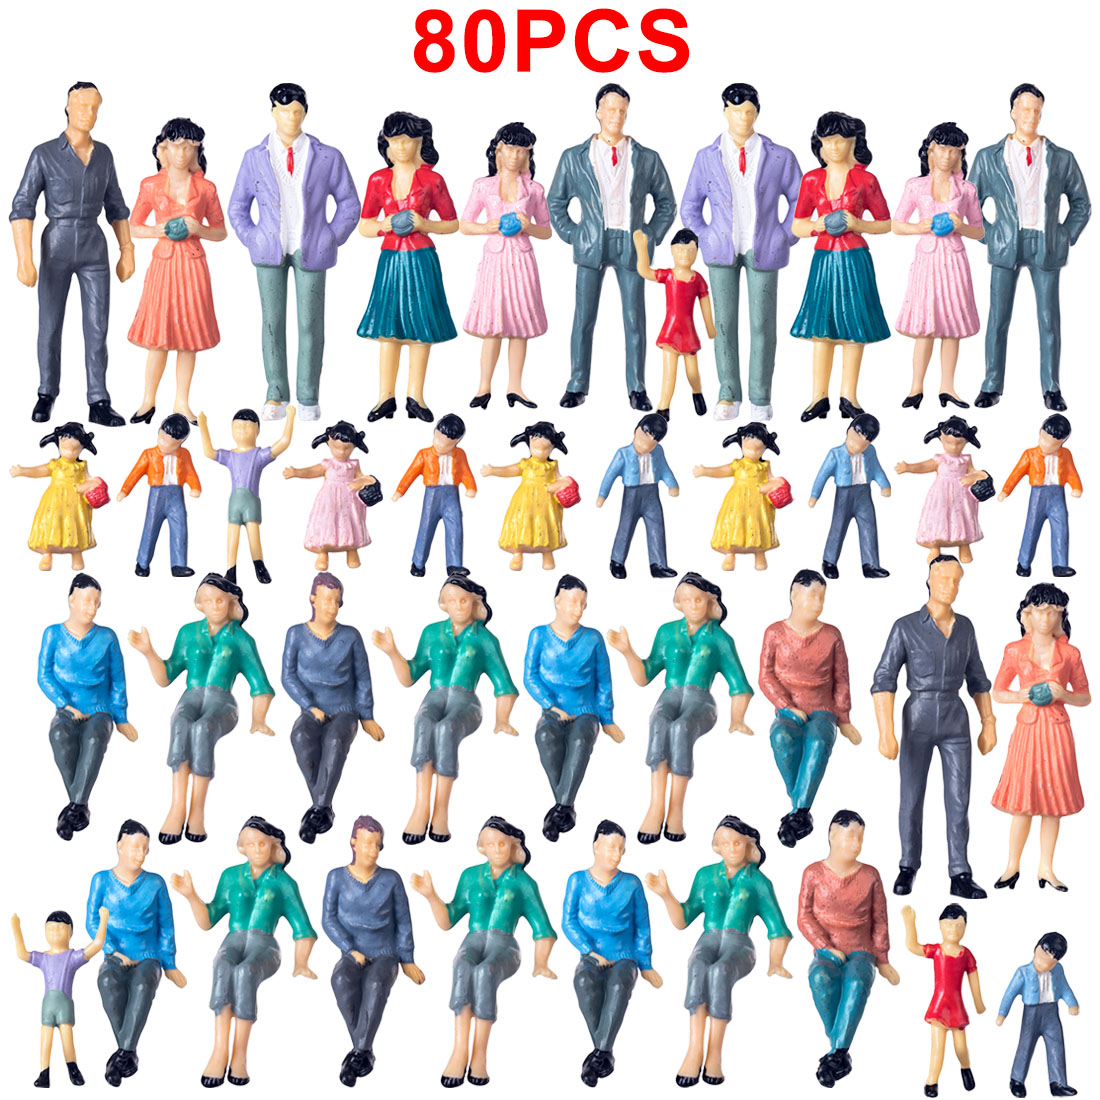 20/40/80pcs 1:25 HO Scale Miniature Figures Model For Train Railway Sand Table - Colorful (Random Type) Model Building Kits